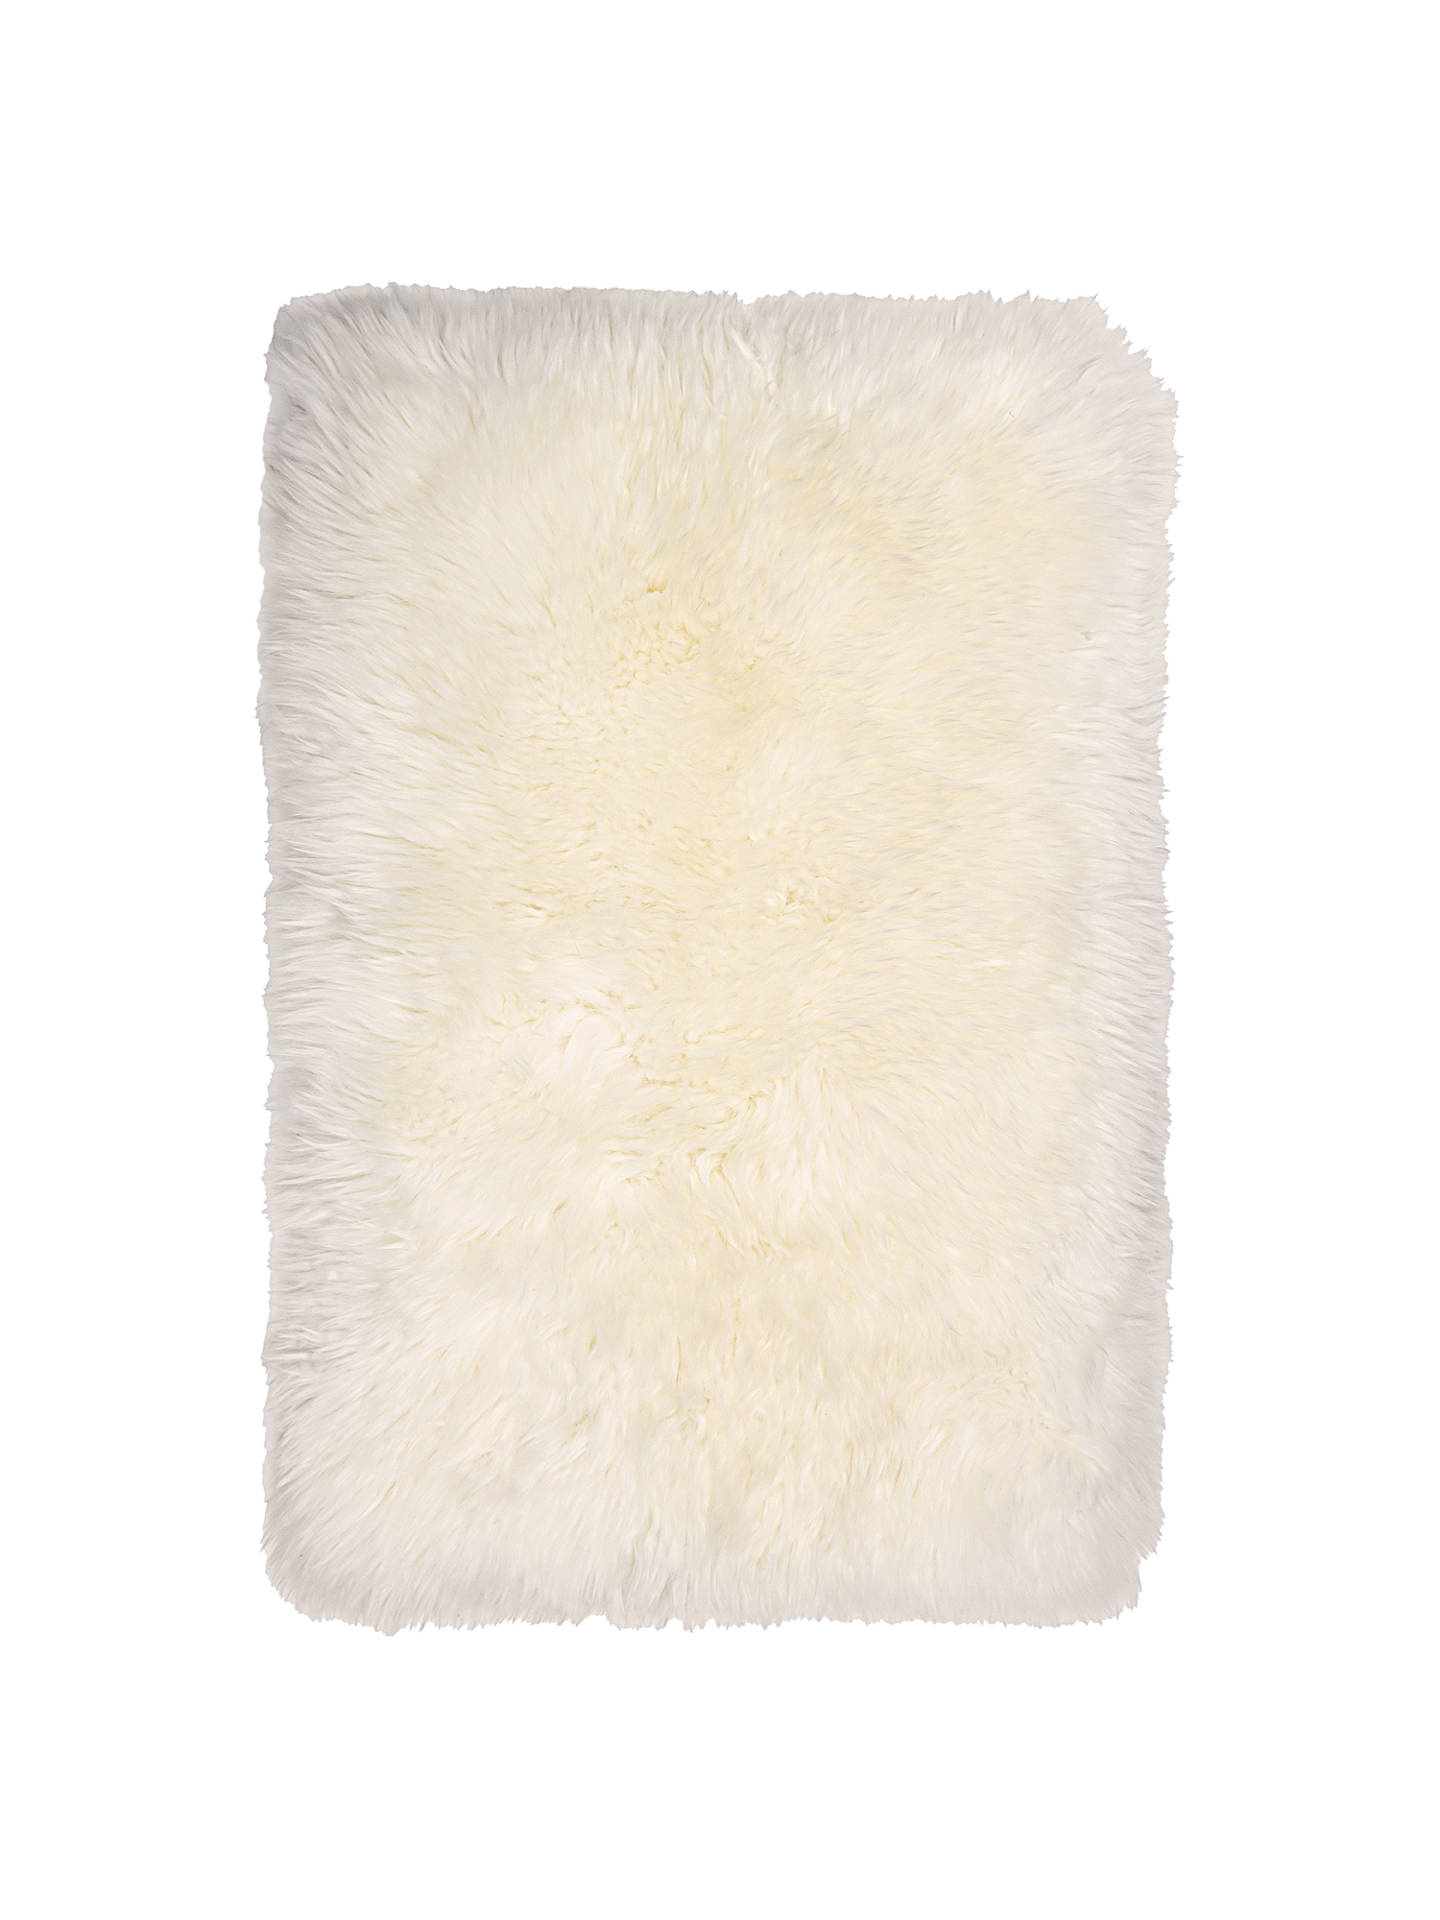 BuyJohn Lewis & Partners Quilted Sheepskin Rug, Ivory, Small Online at johnlewis.com